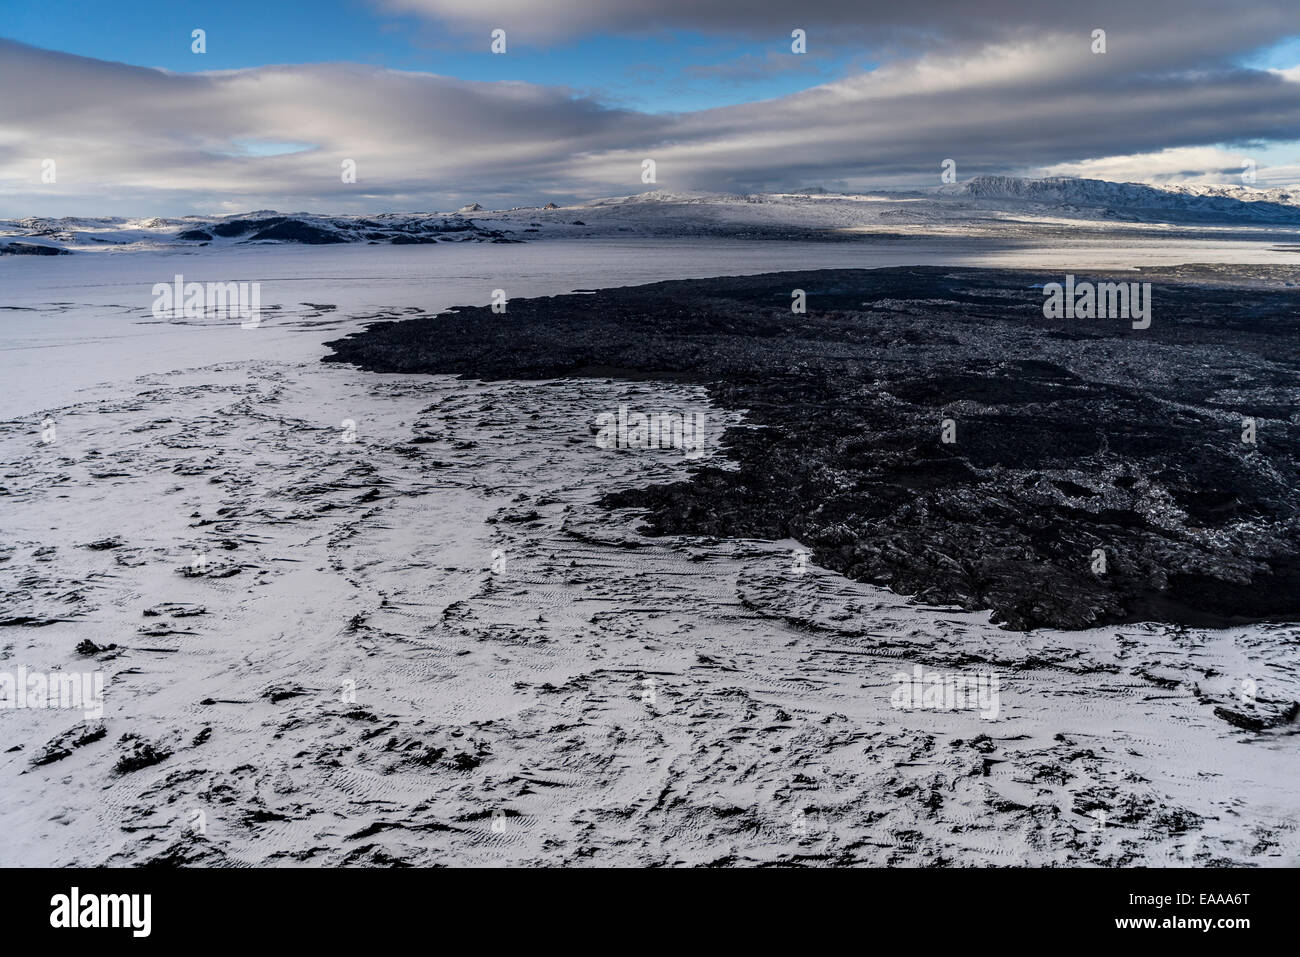 Snow covered lava from the Holuhraun Fissure Eruption, Bardarbunga, Iceland - Stock Image